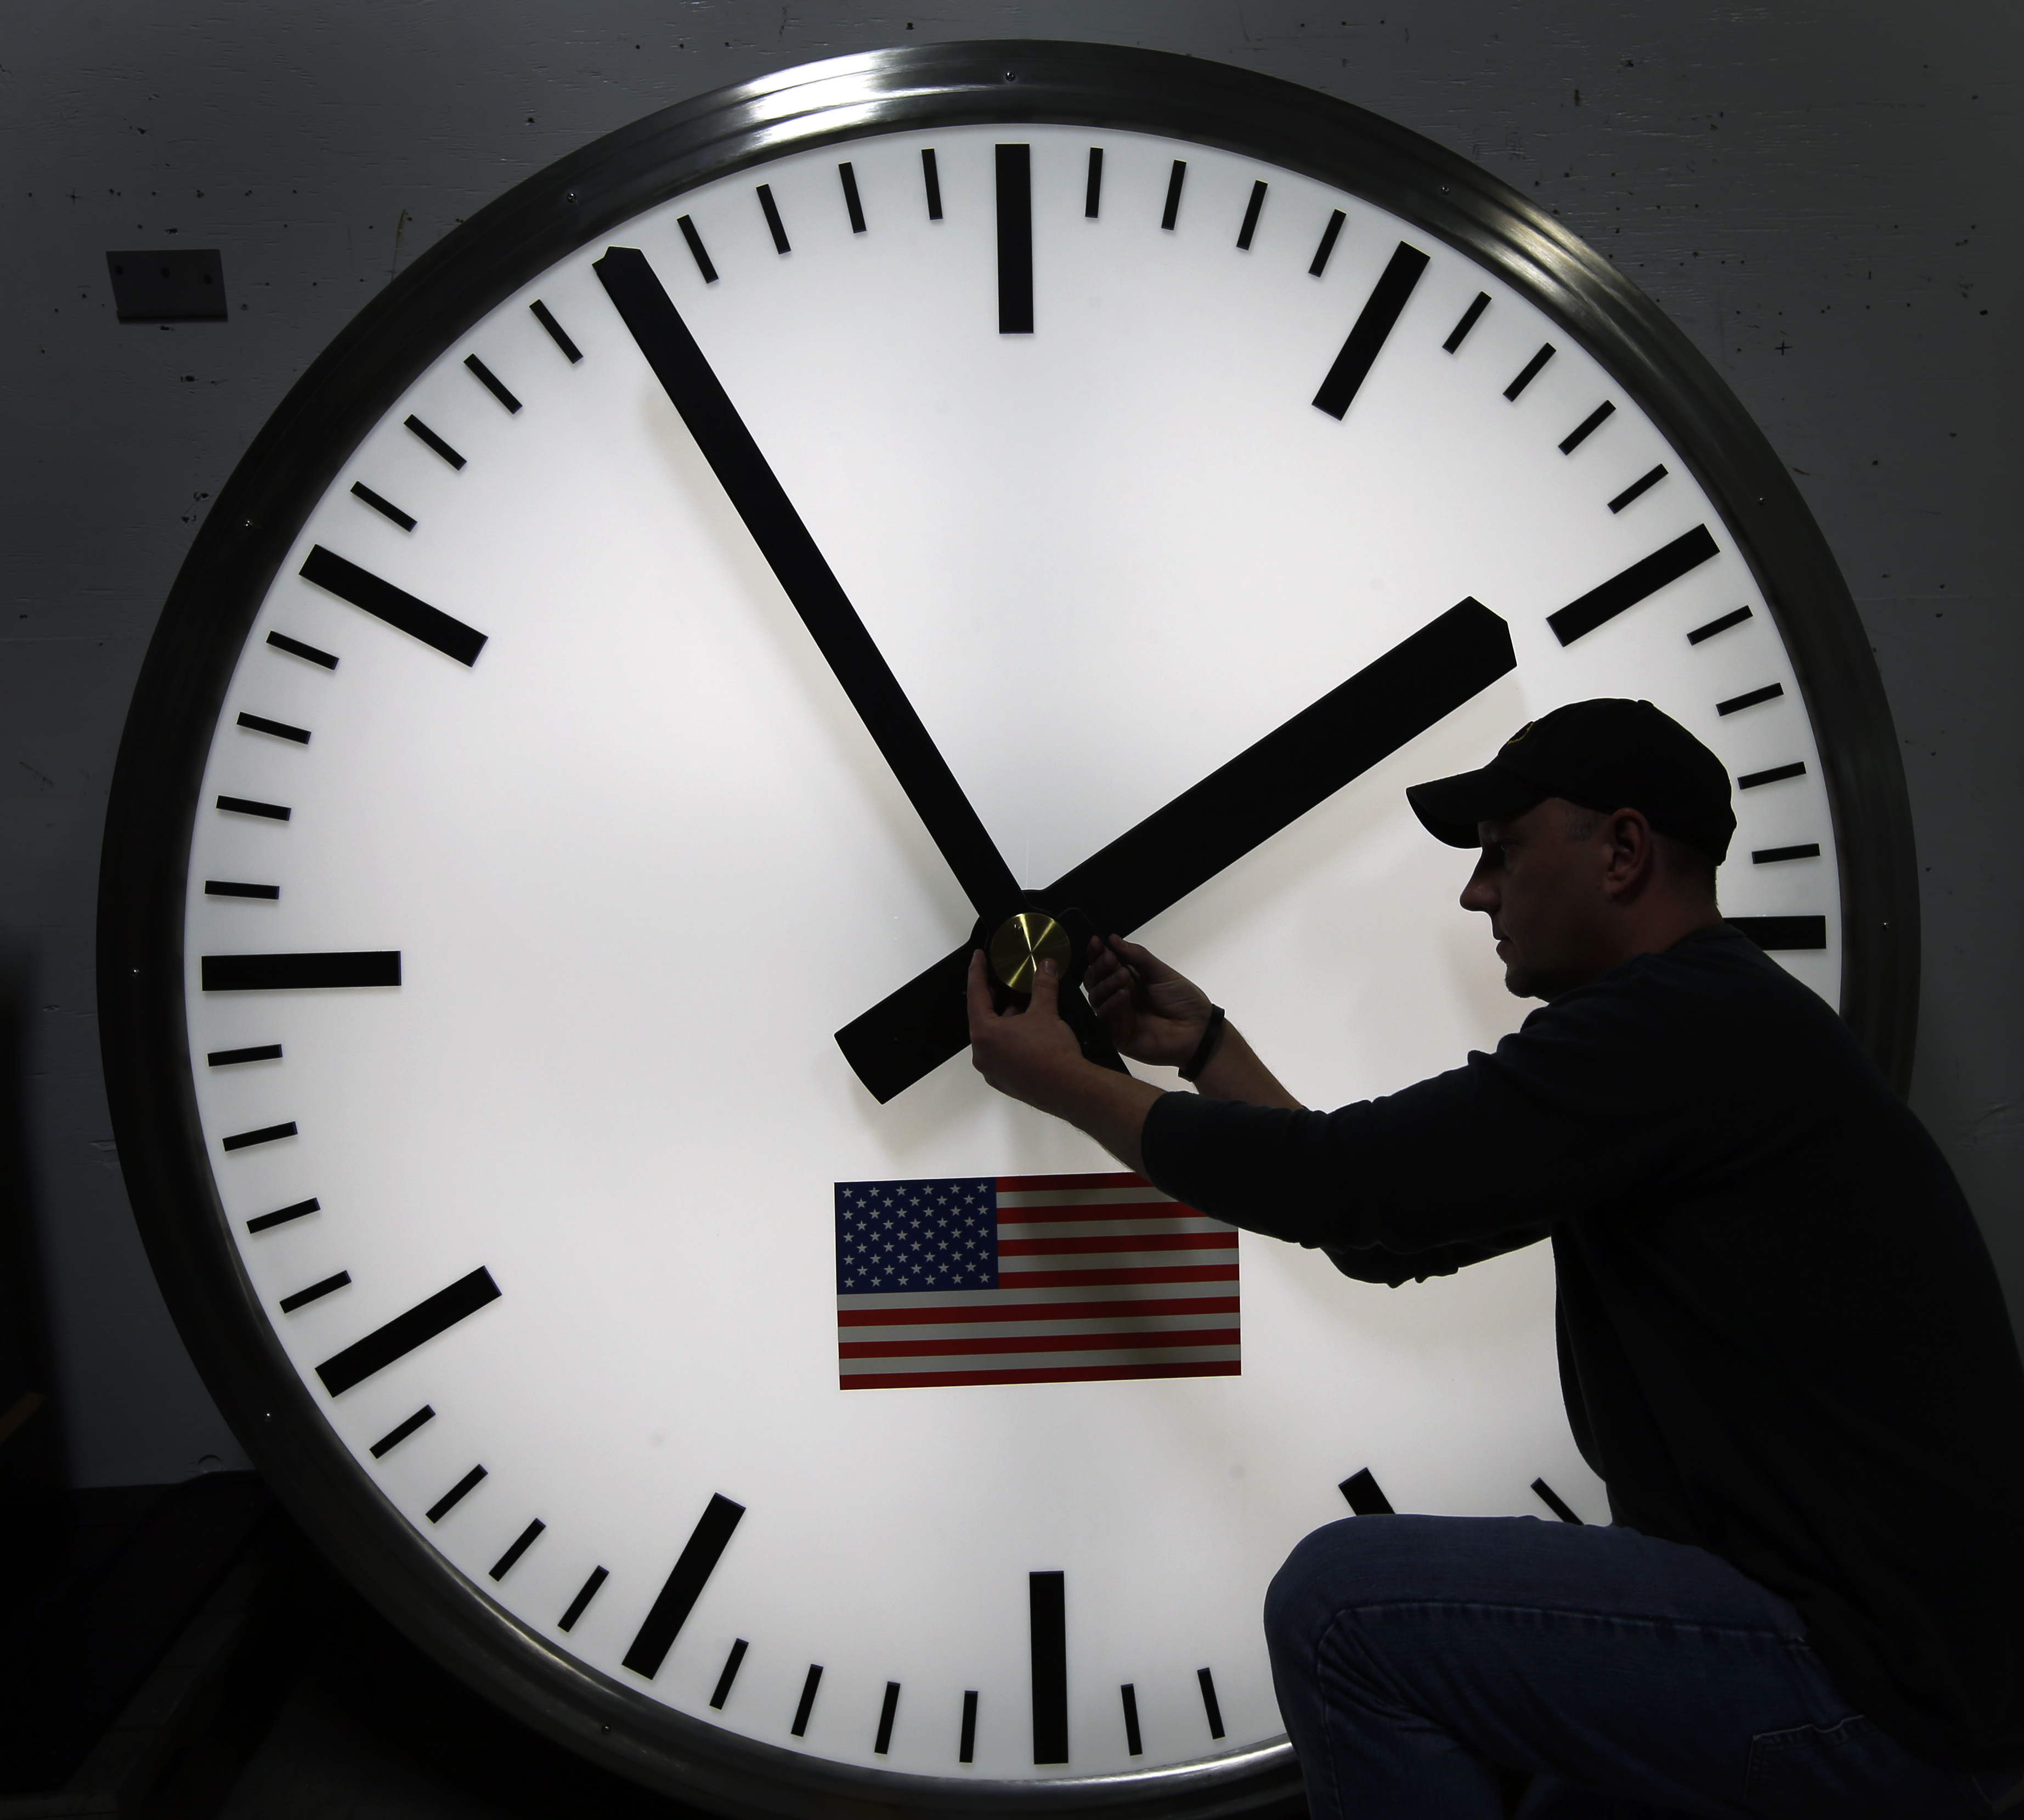 AAA: Daylight saving time brings increased crash risk